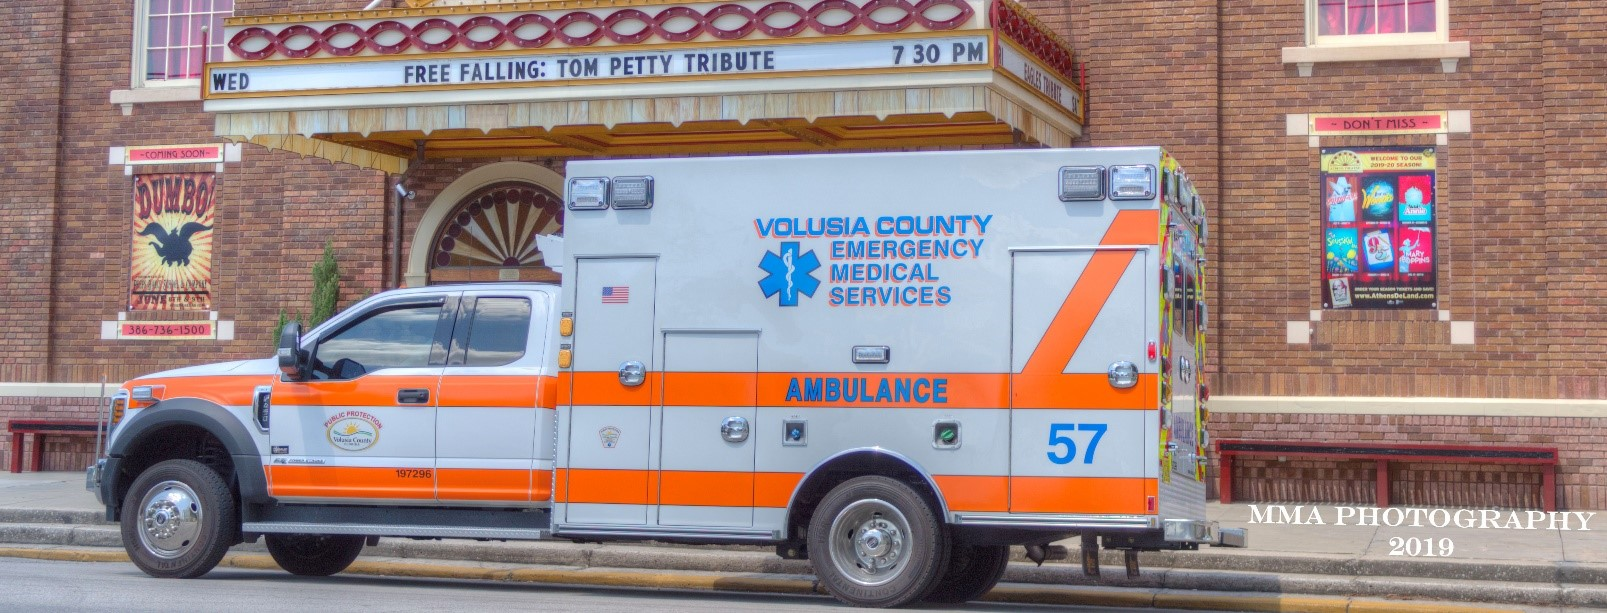 """<span style=""""font-size: 18pt; color: #016bb8;""""><strong>Volusia County Emergency Medical Services</strong></span>"""